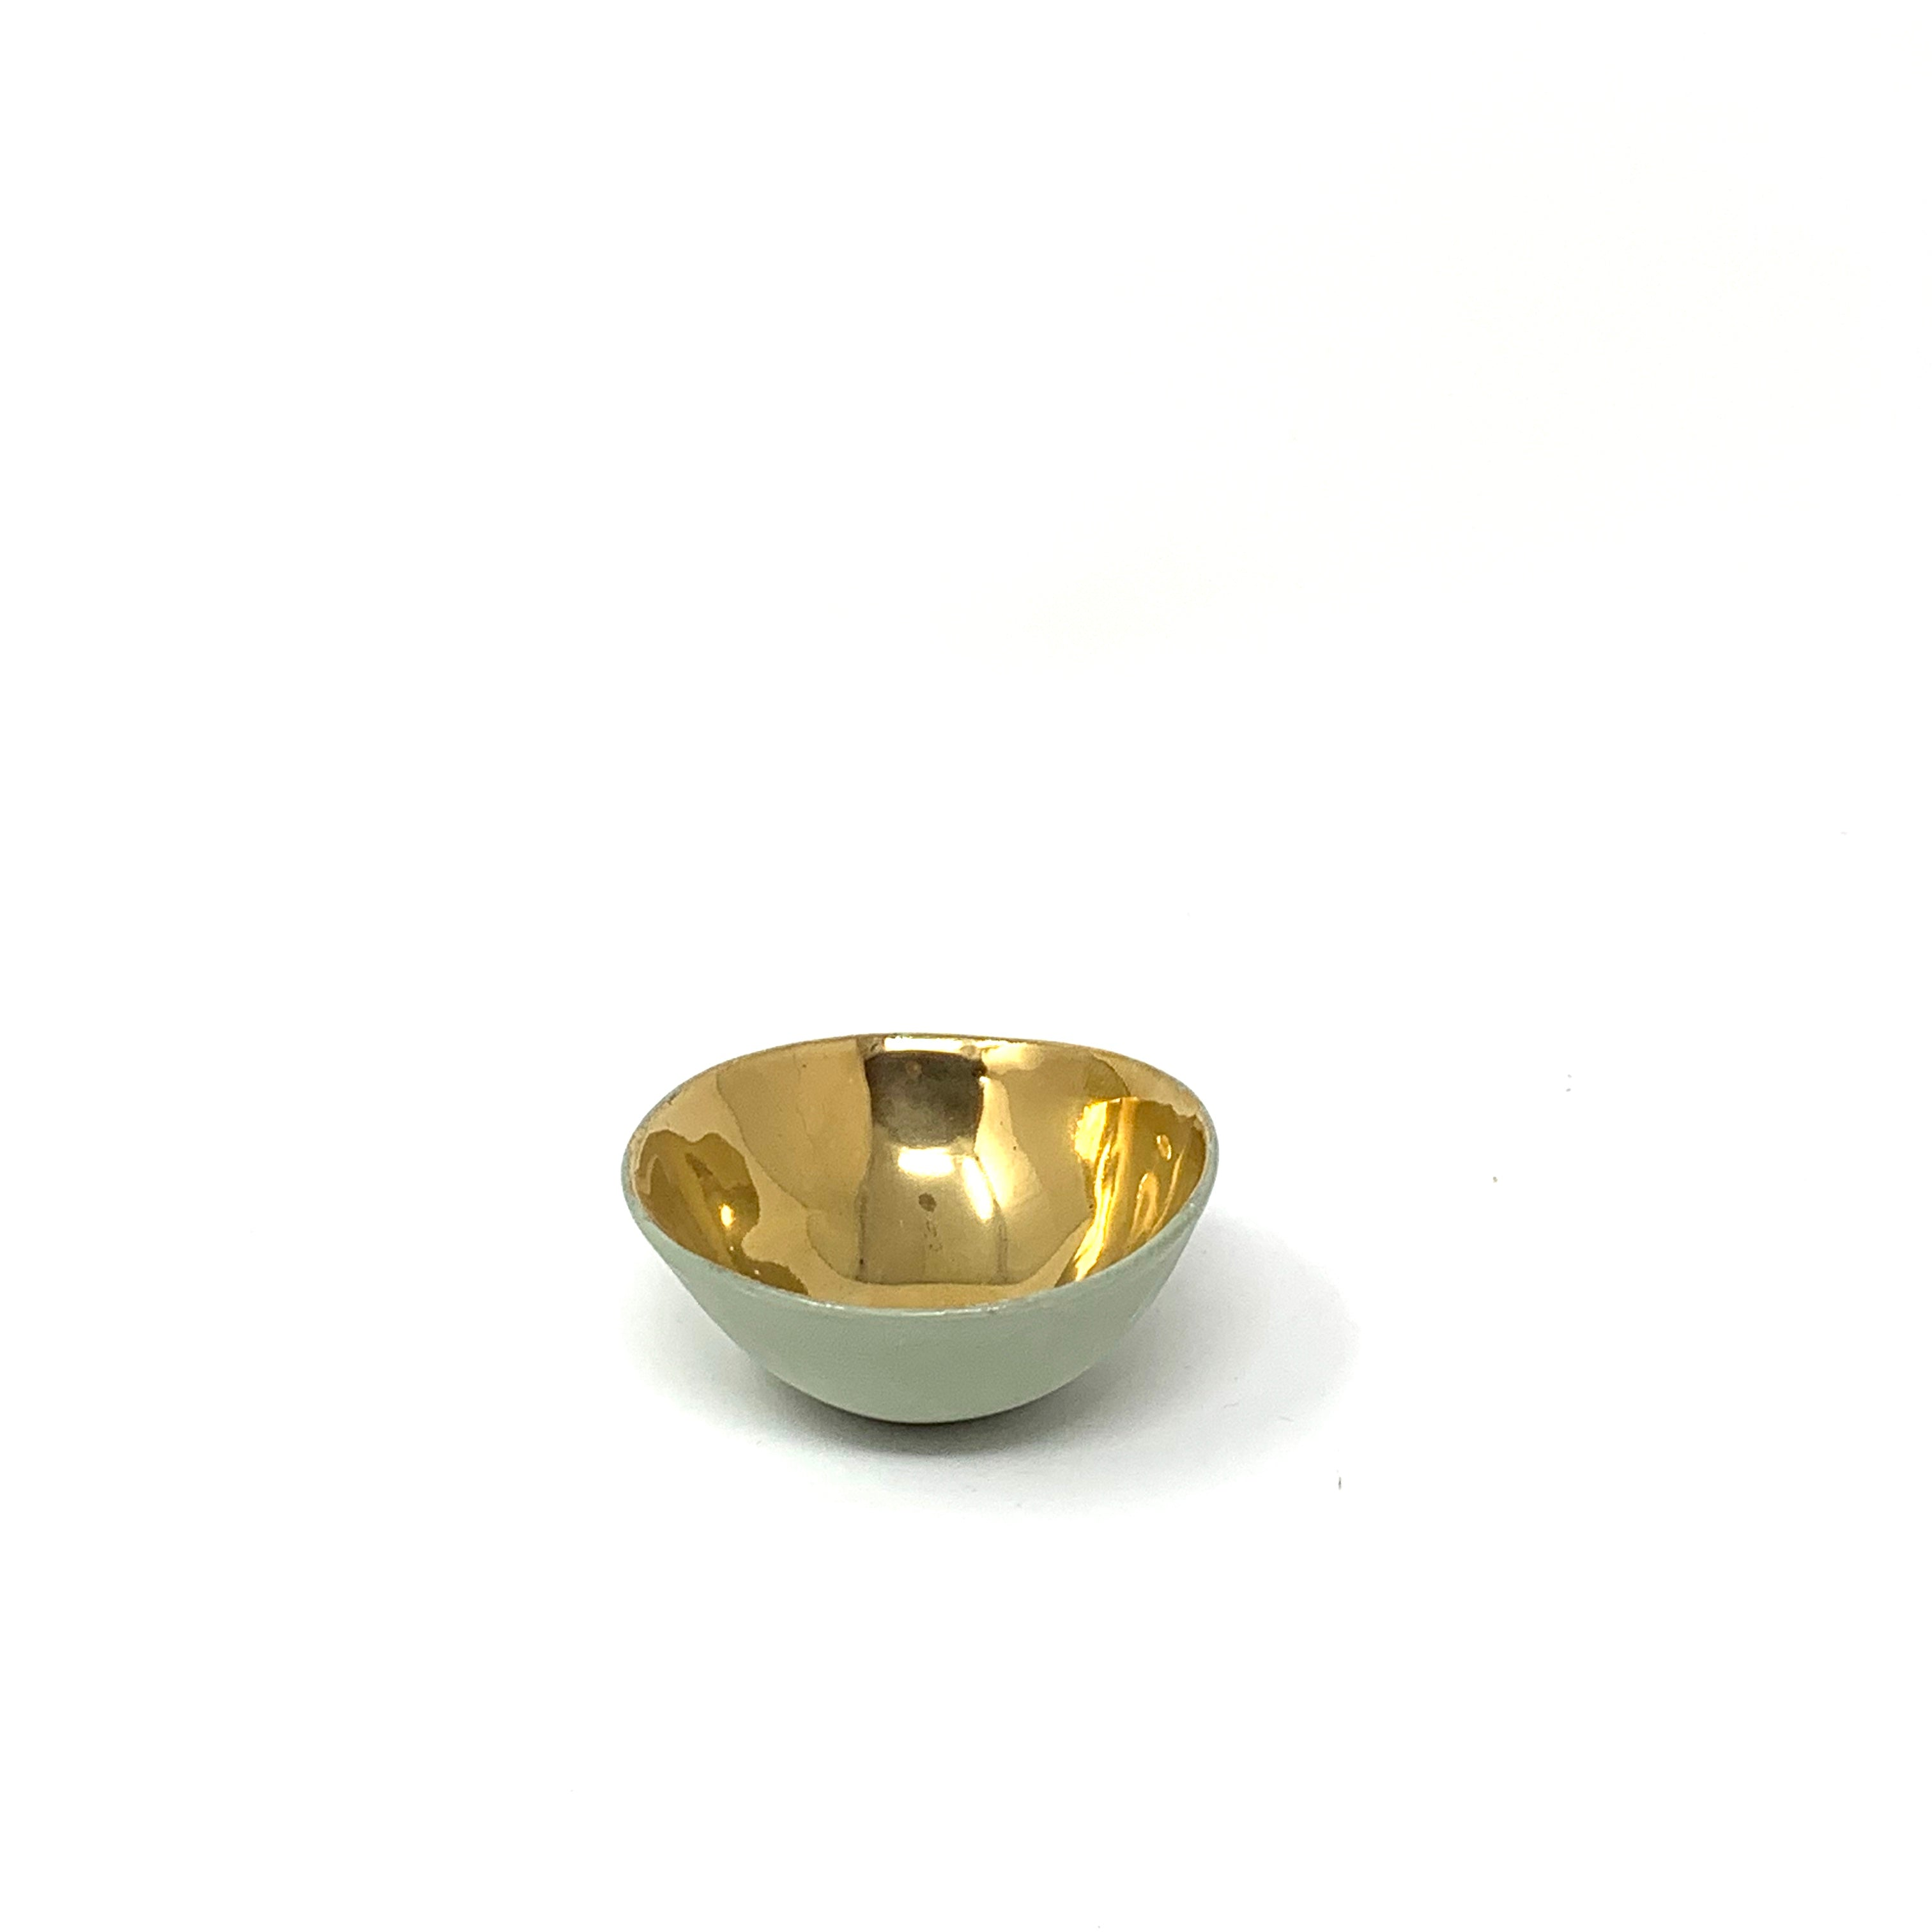 "Ceramic Bowl Gold Interior and Matte Exterior 2.5"" Diameter"